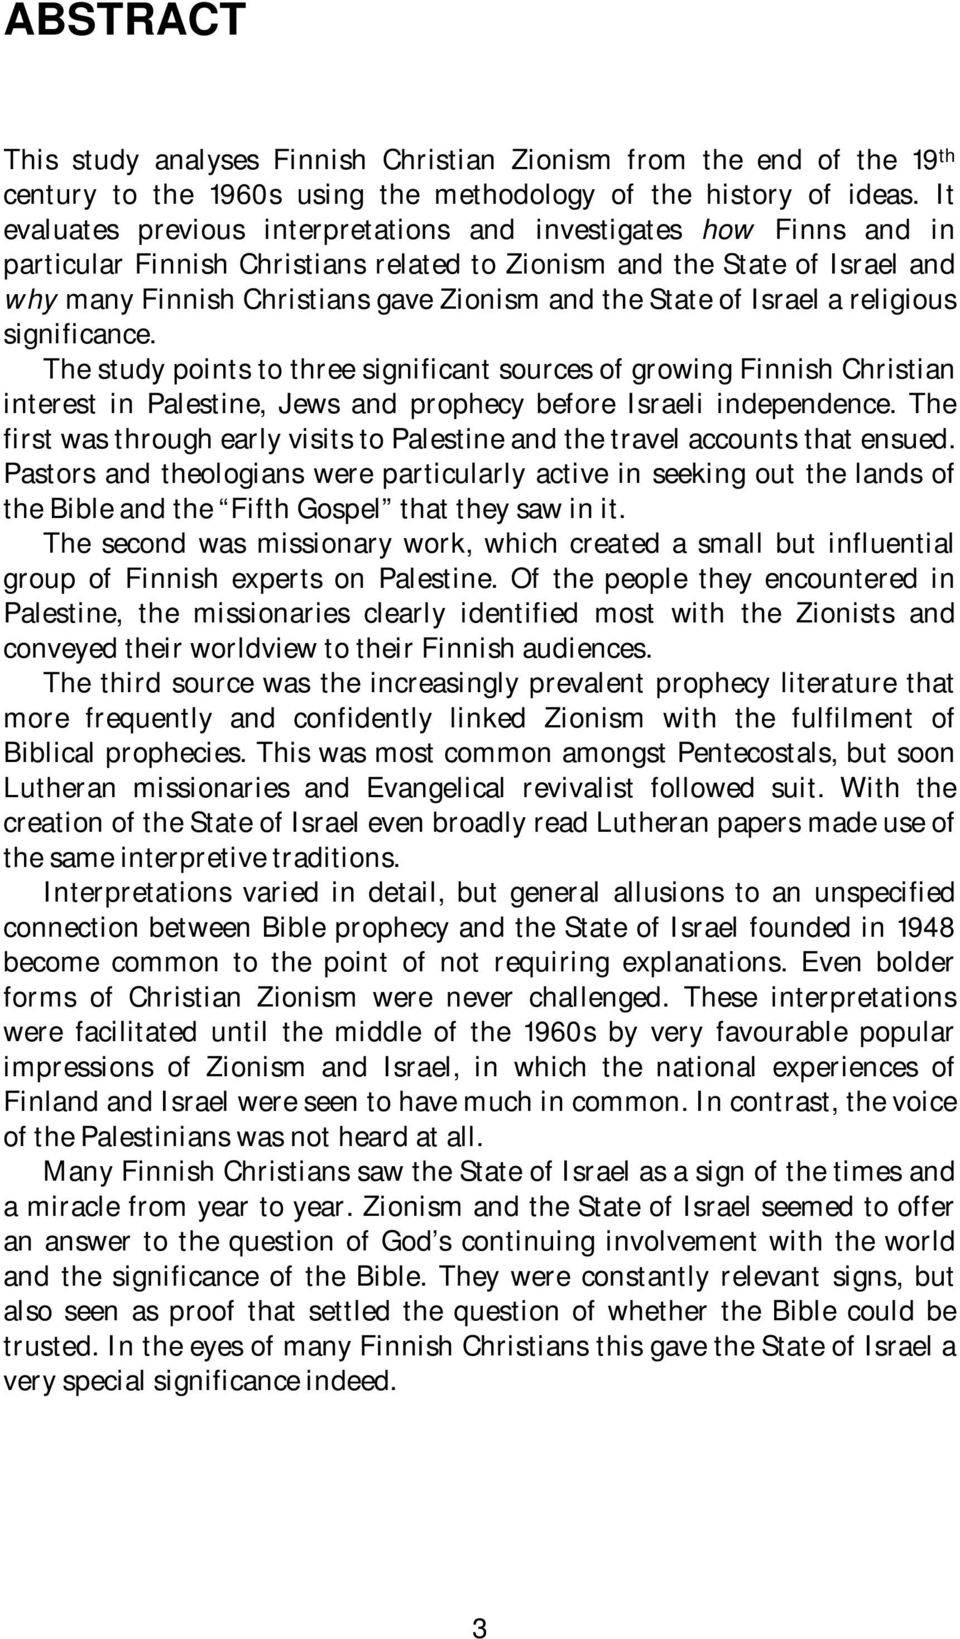 State of Israel a religious significance. The study points to three significant sources of growing Finnish Christian interest in Palestine, Jews and prophecy before Israeli independence.